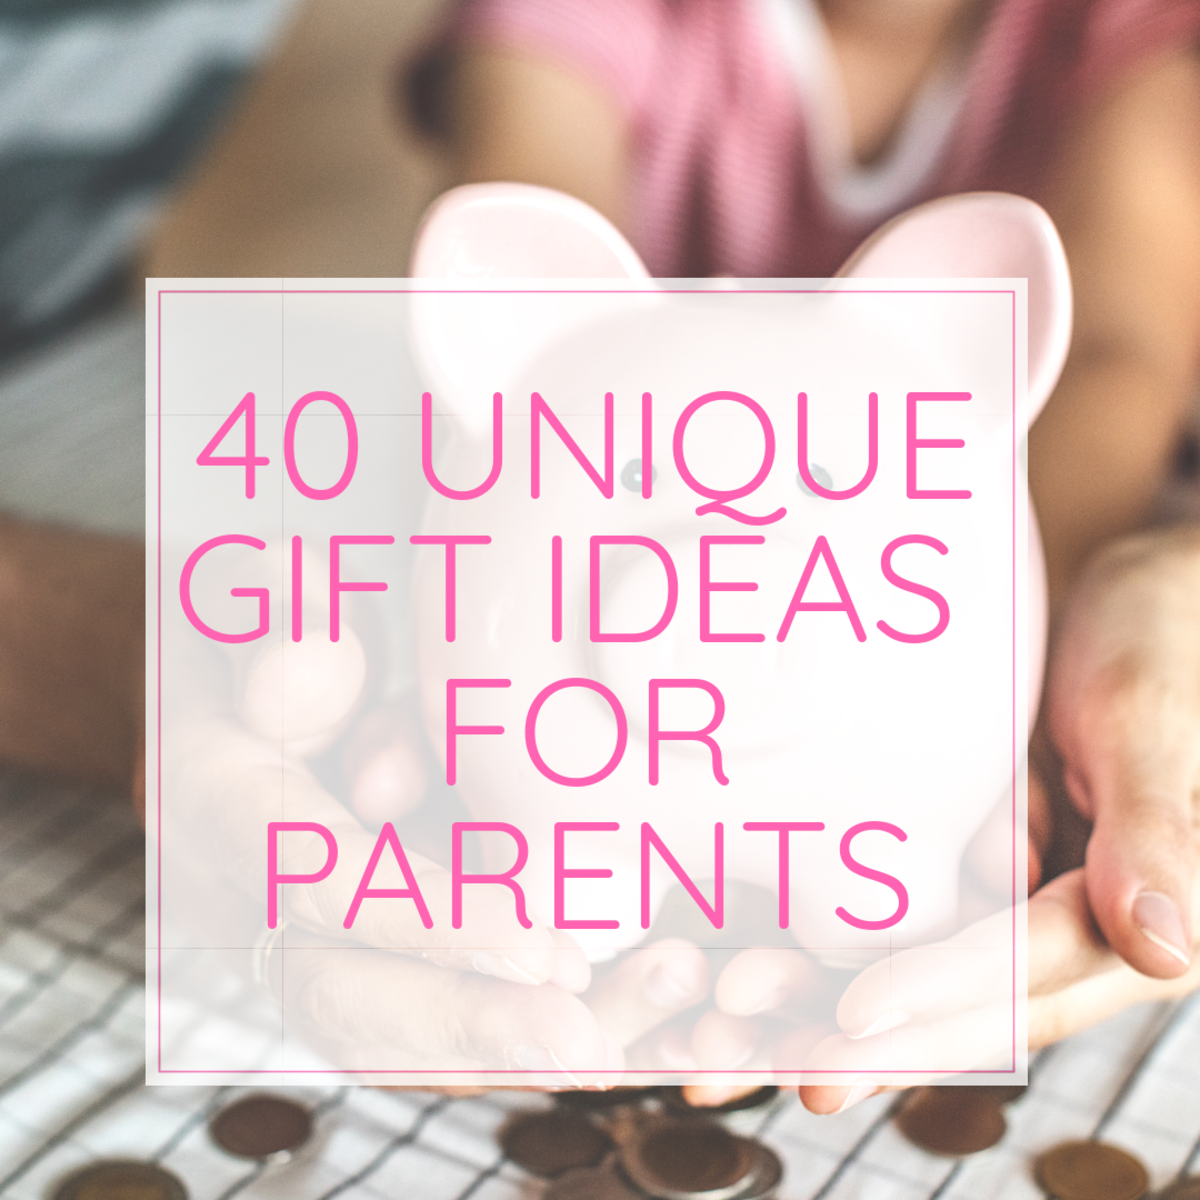 40 Unique Gift Ideas for Parents